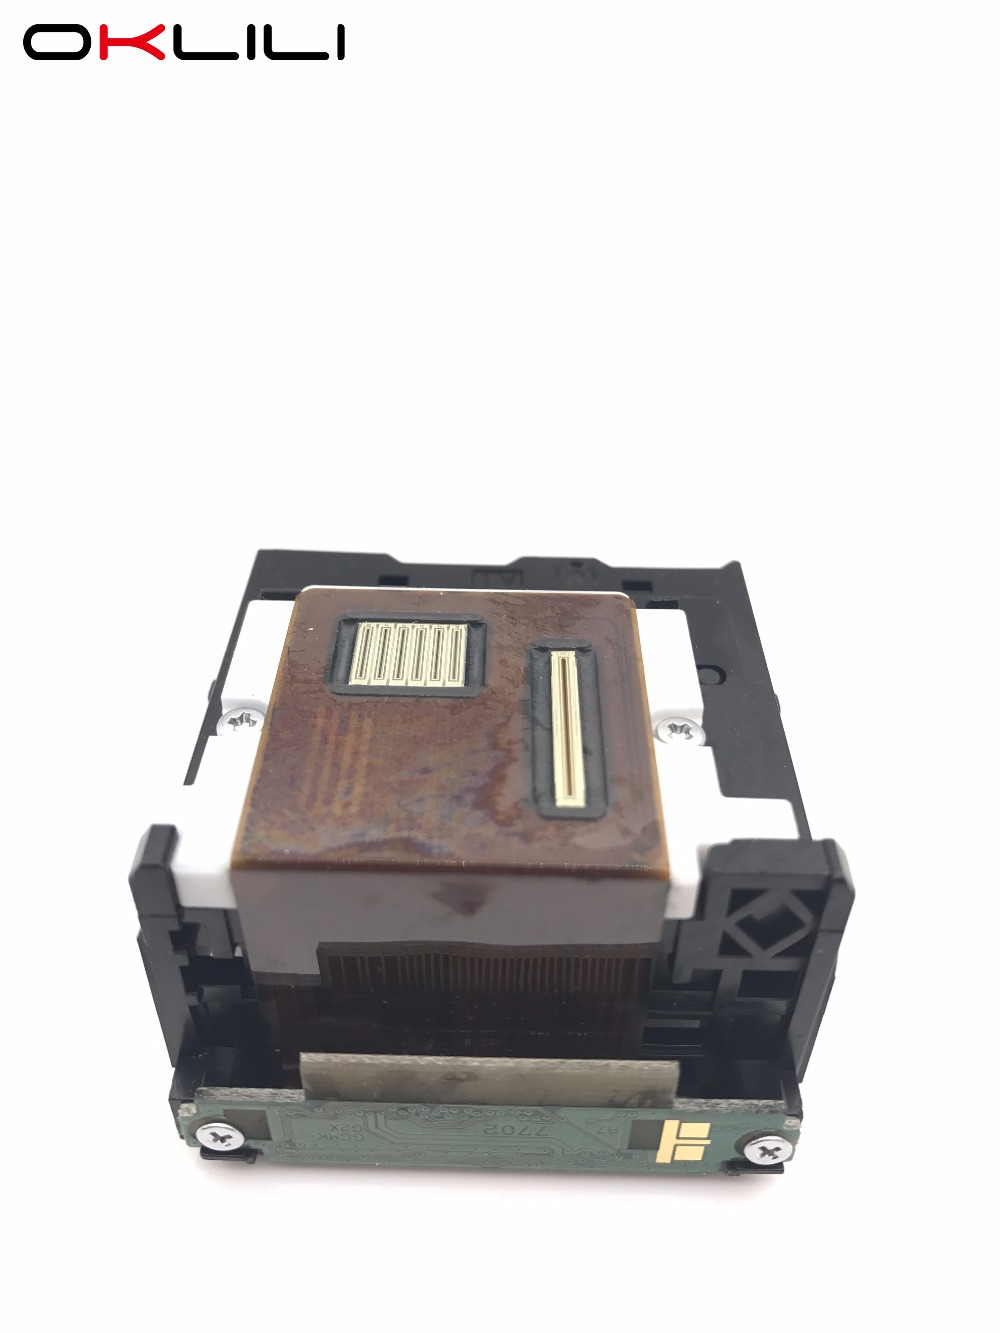 OKLILI ORIGINAL QY6-0068 QY6-0068-000 Printhead Print Head Printer Head for Canon PIXMA iP100 qy6 0069 qy6 0069 qy60069 qy6 0069 000 printhead print head printer head remanufactured for canon mini260 mini320